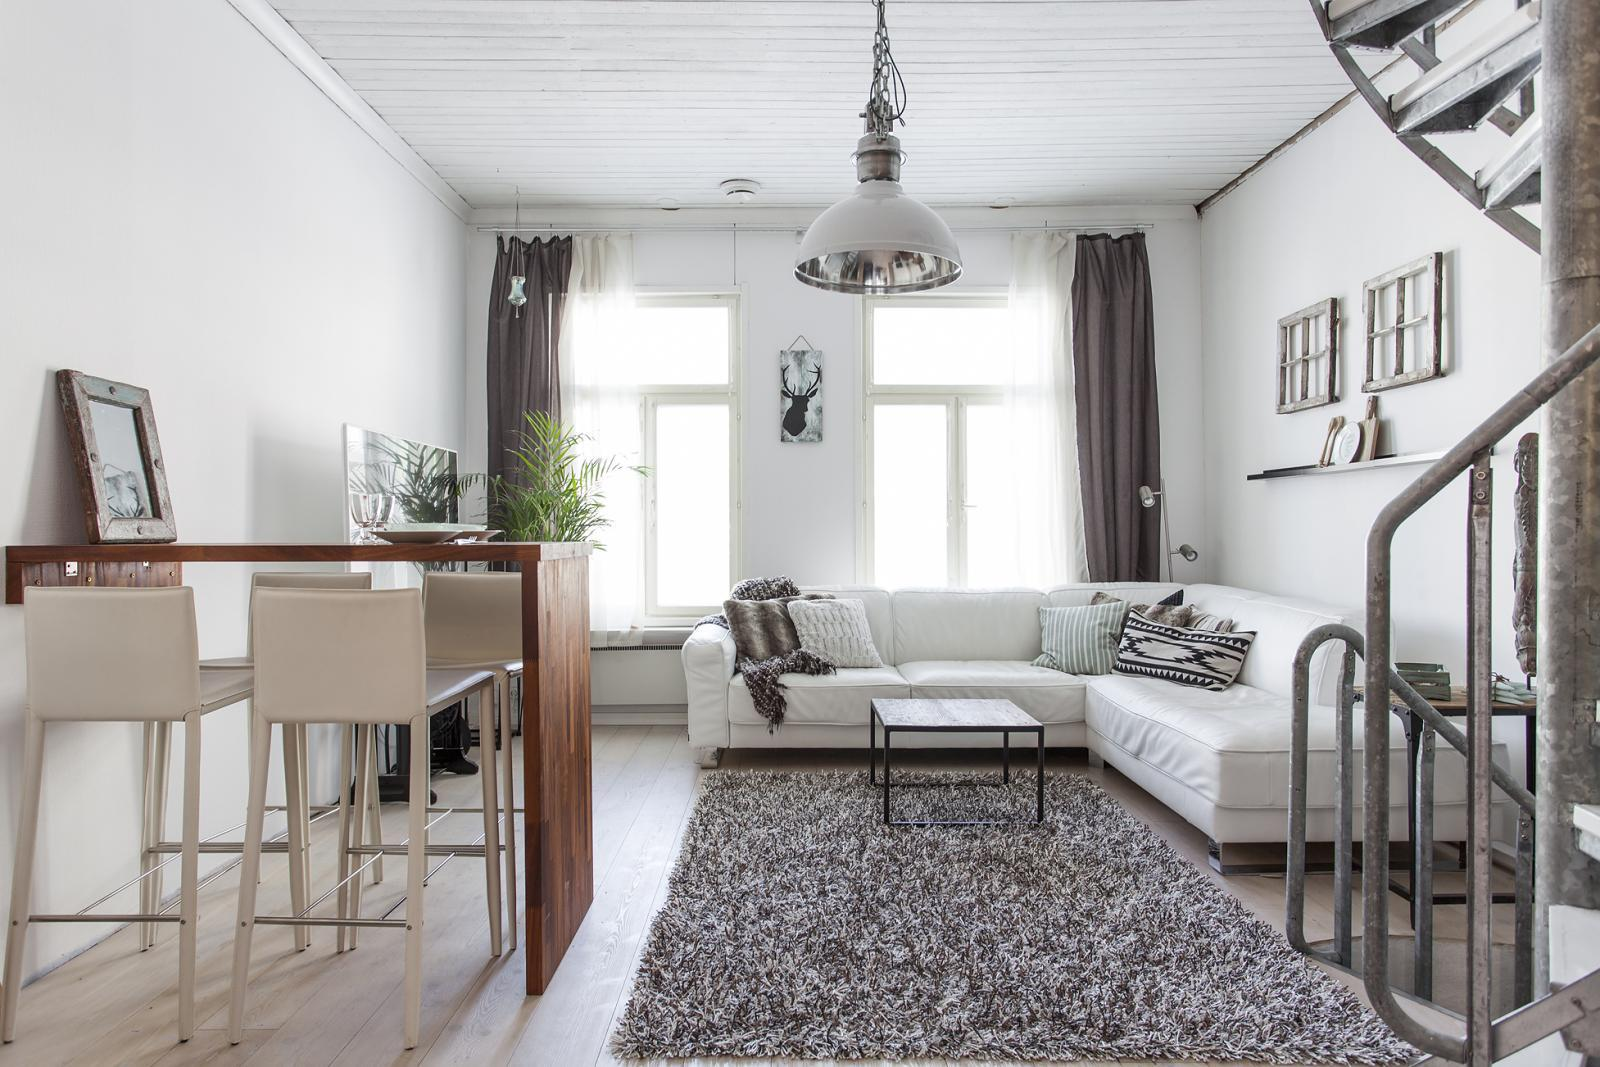 Personal Apartment In Old Wooden House 5